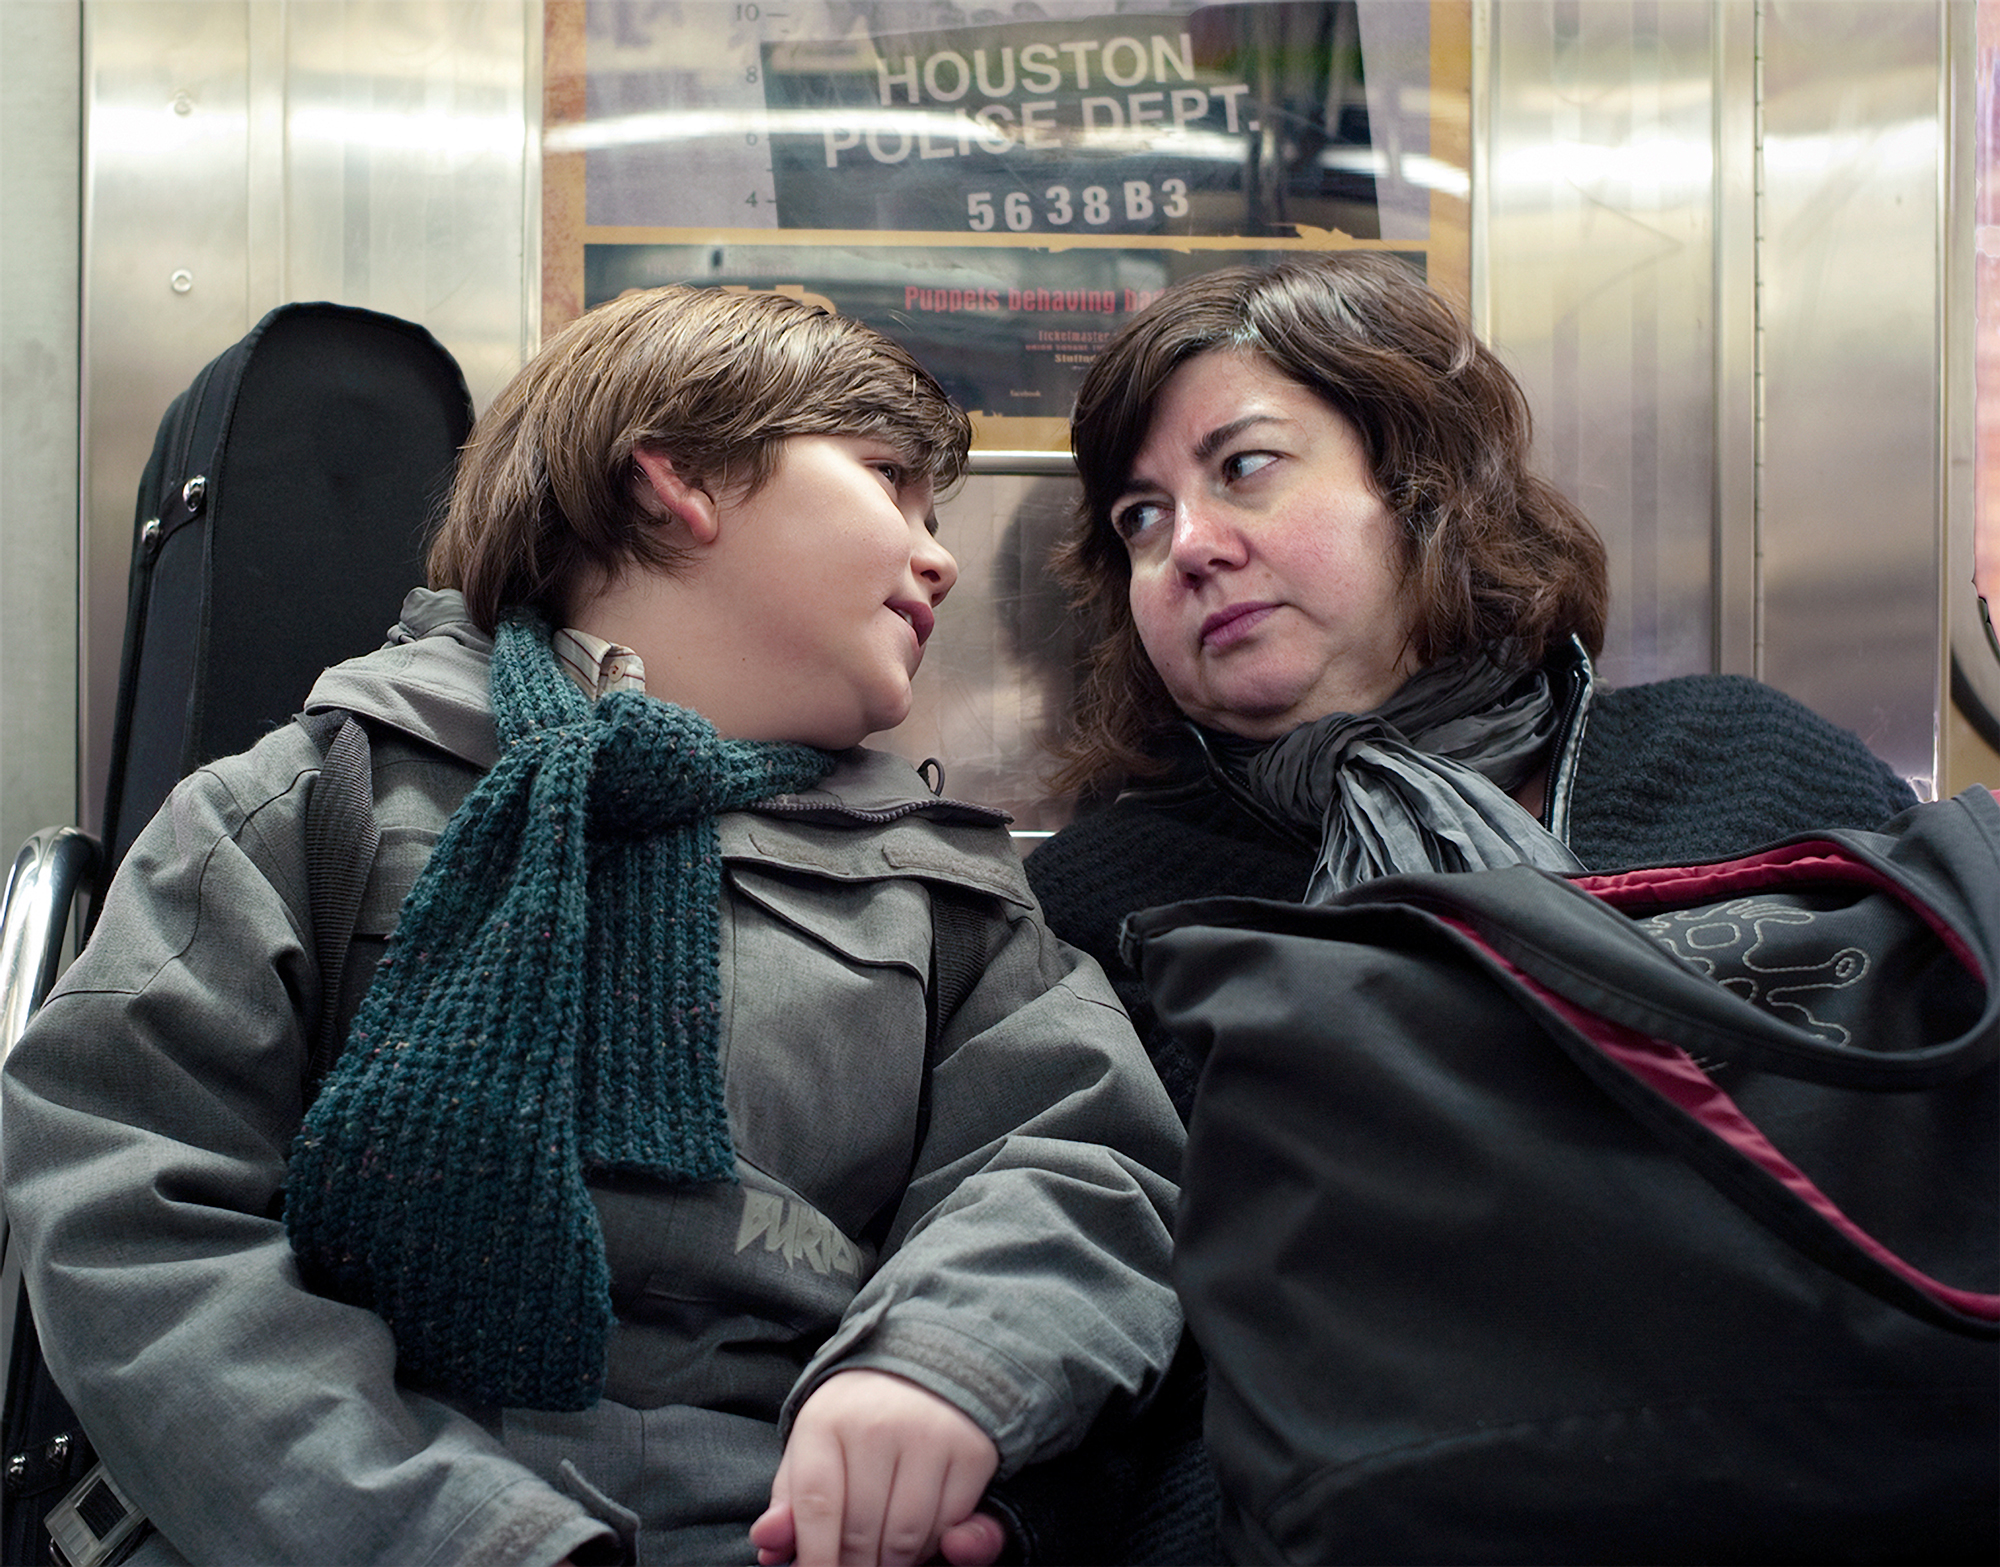 Mother And Child On The A Train, 2010